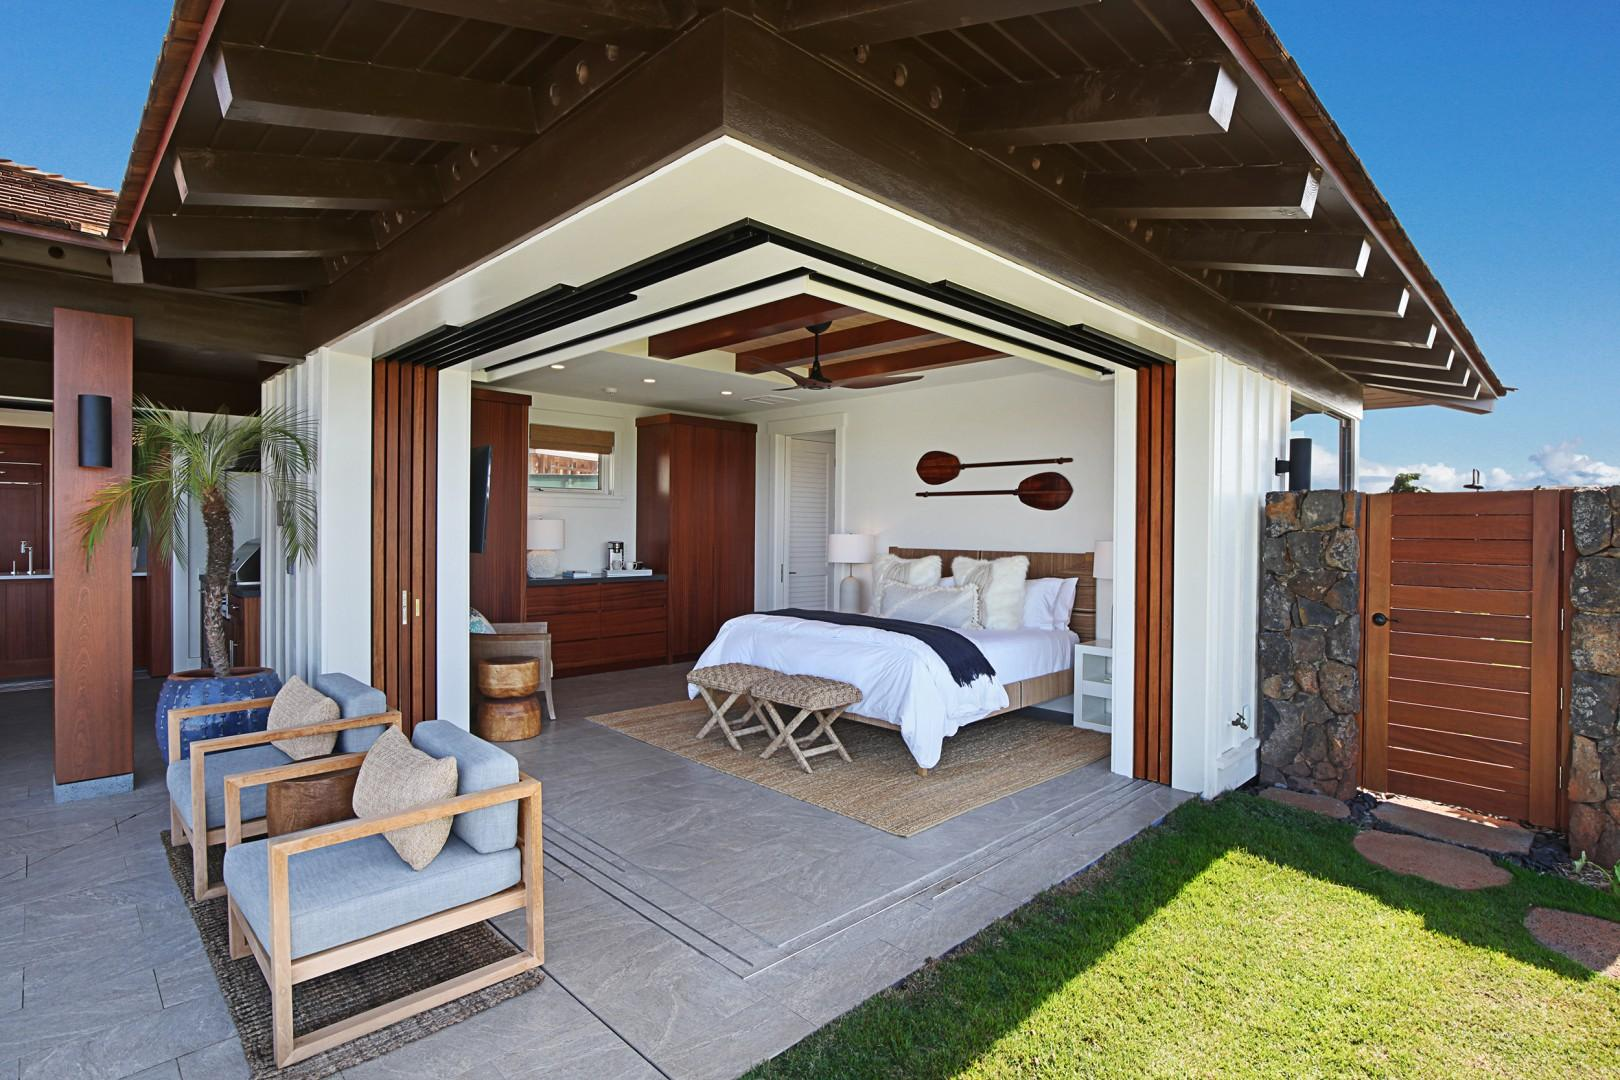 Master Suite with separate entrance and ensuite bathroom